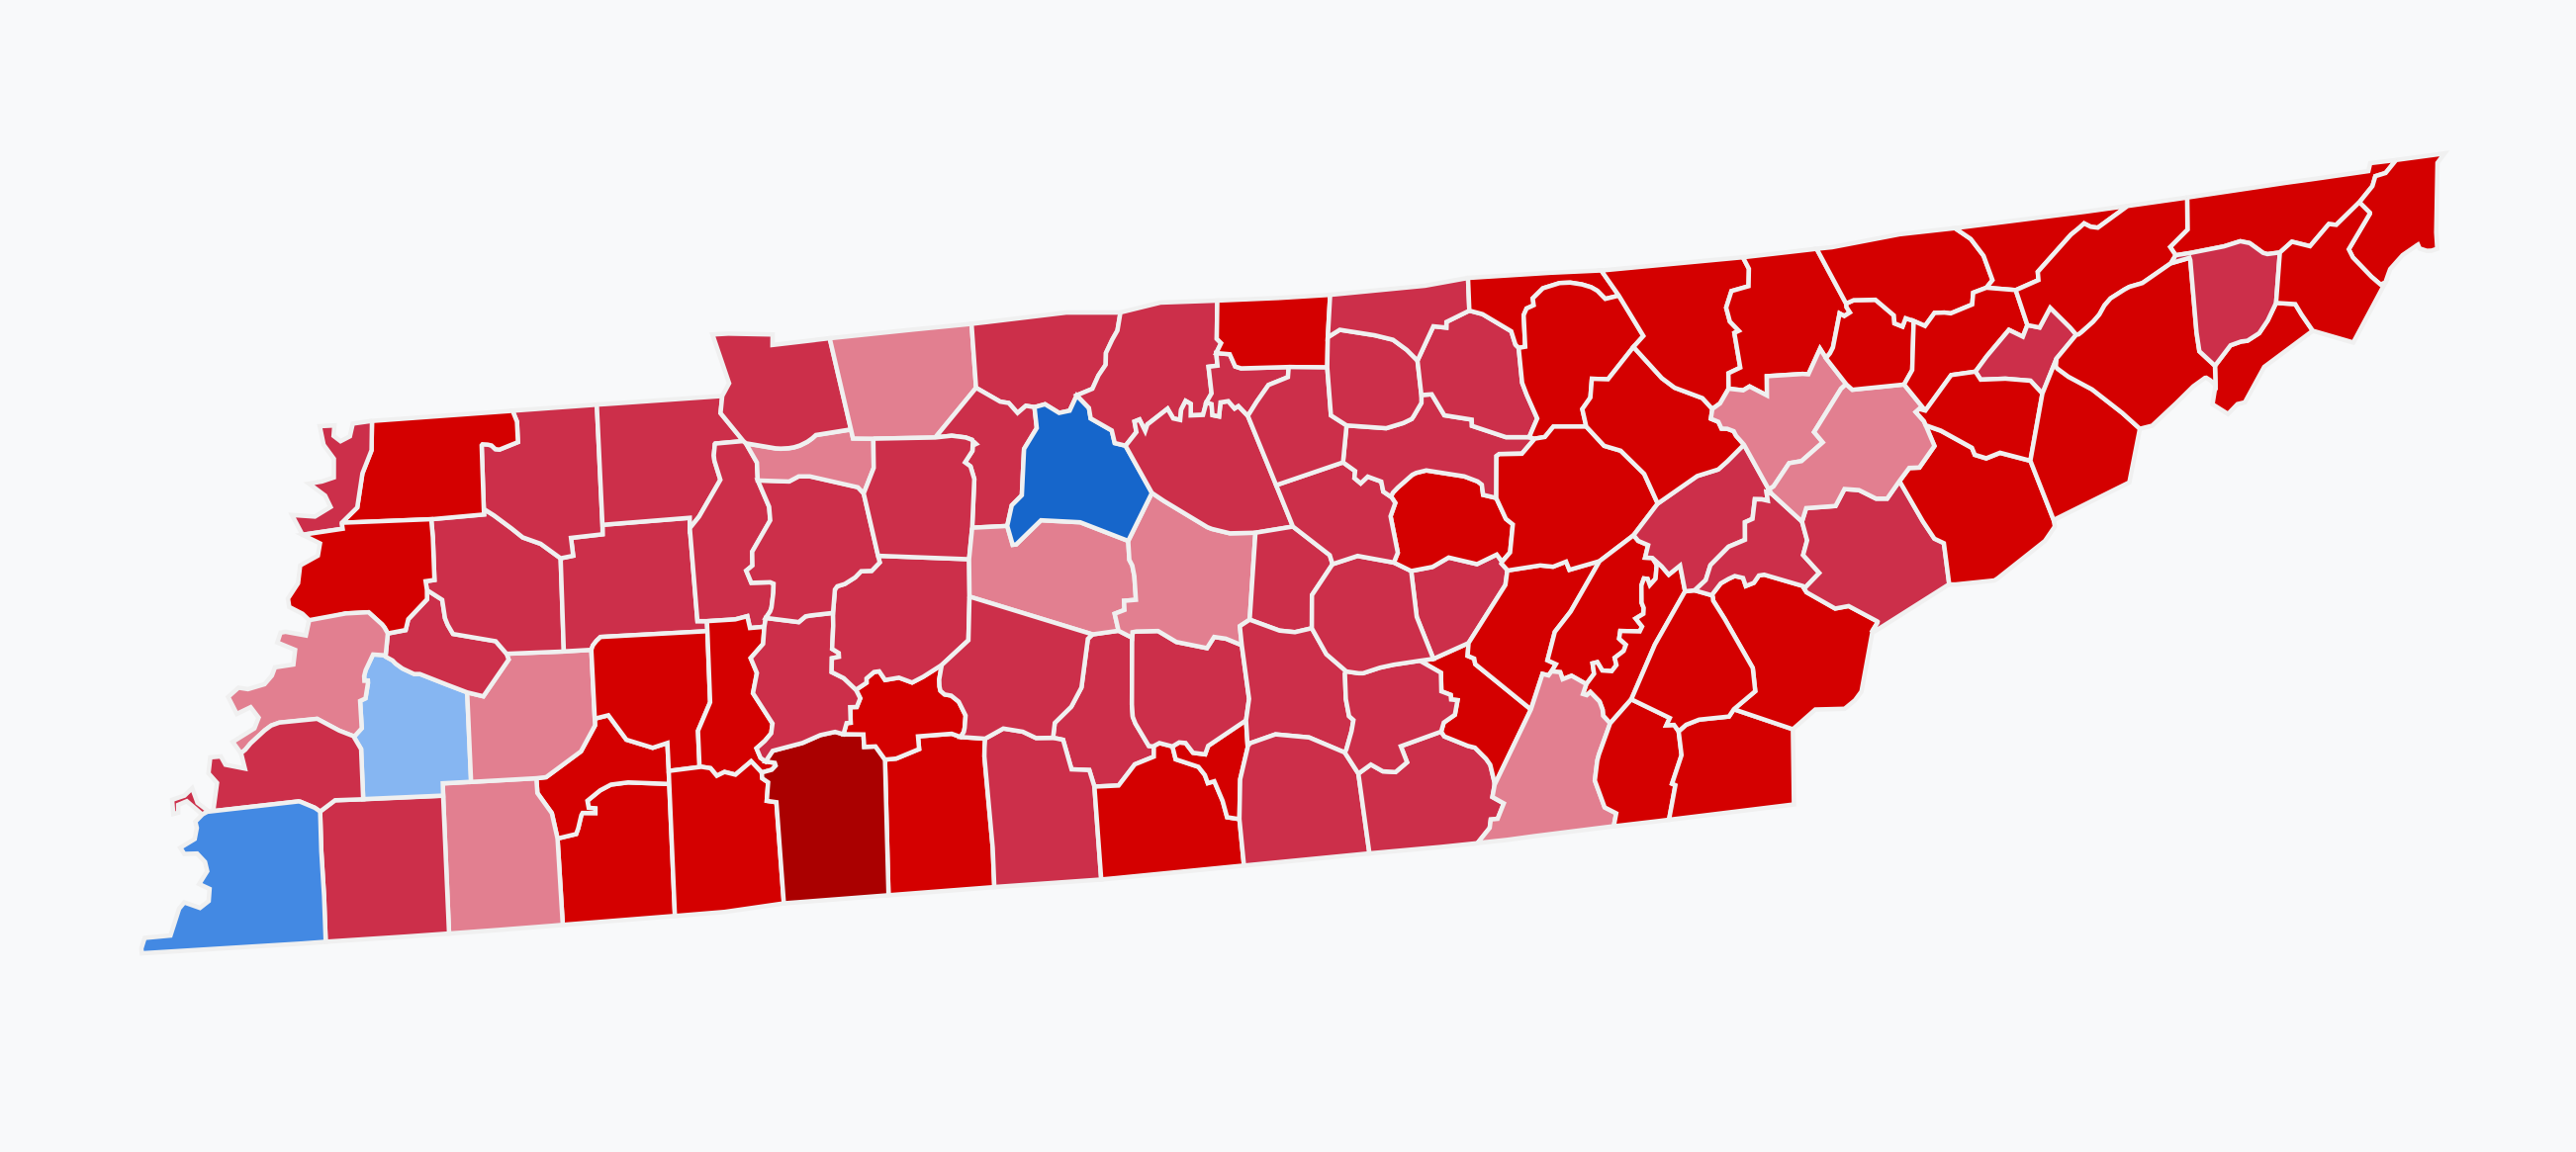 File:Results for the 2018 Senate election in Tennessee.png.